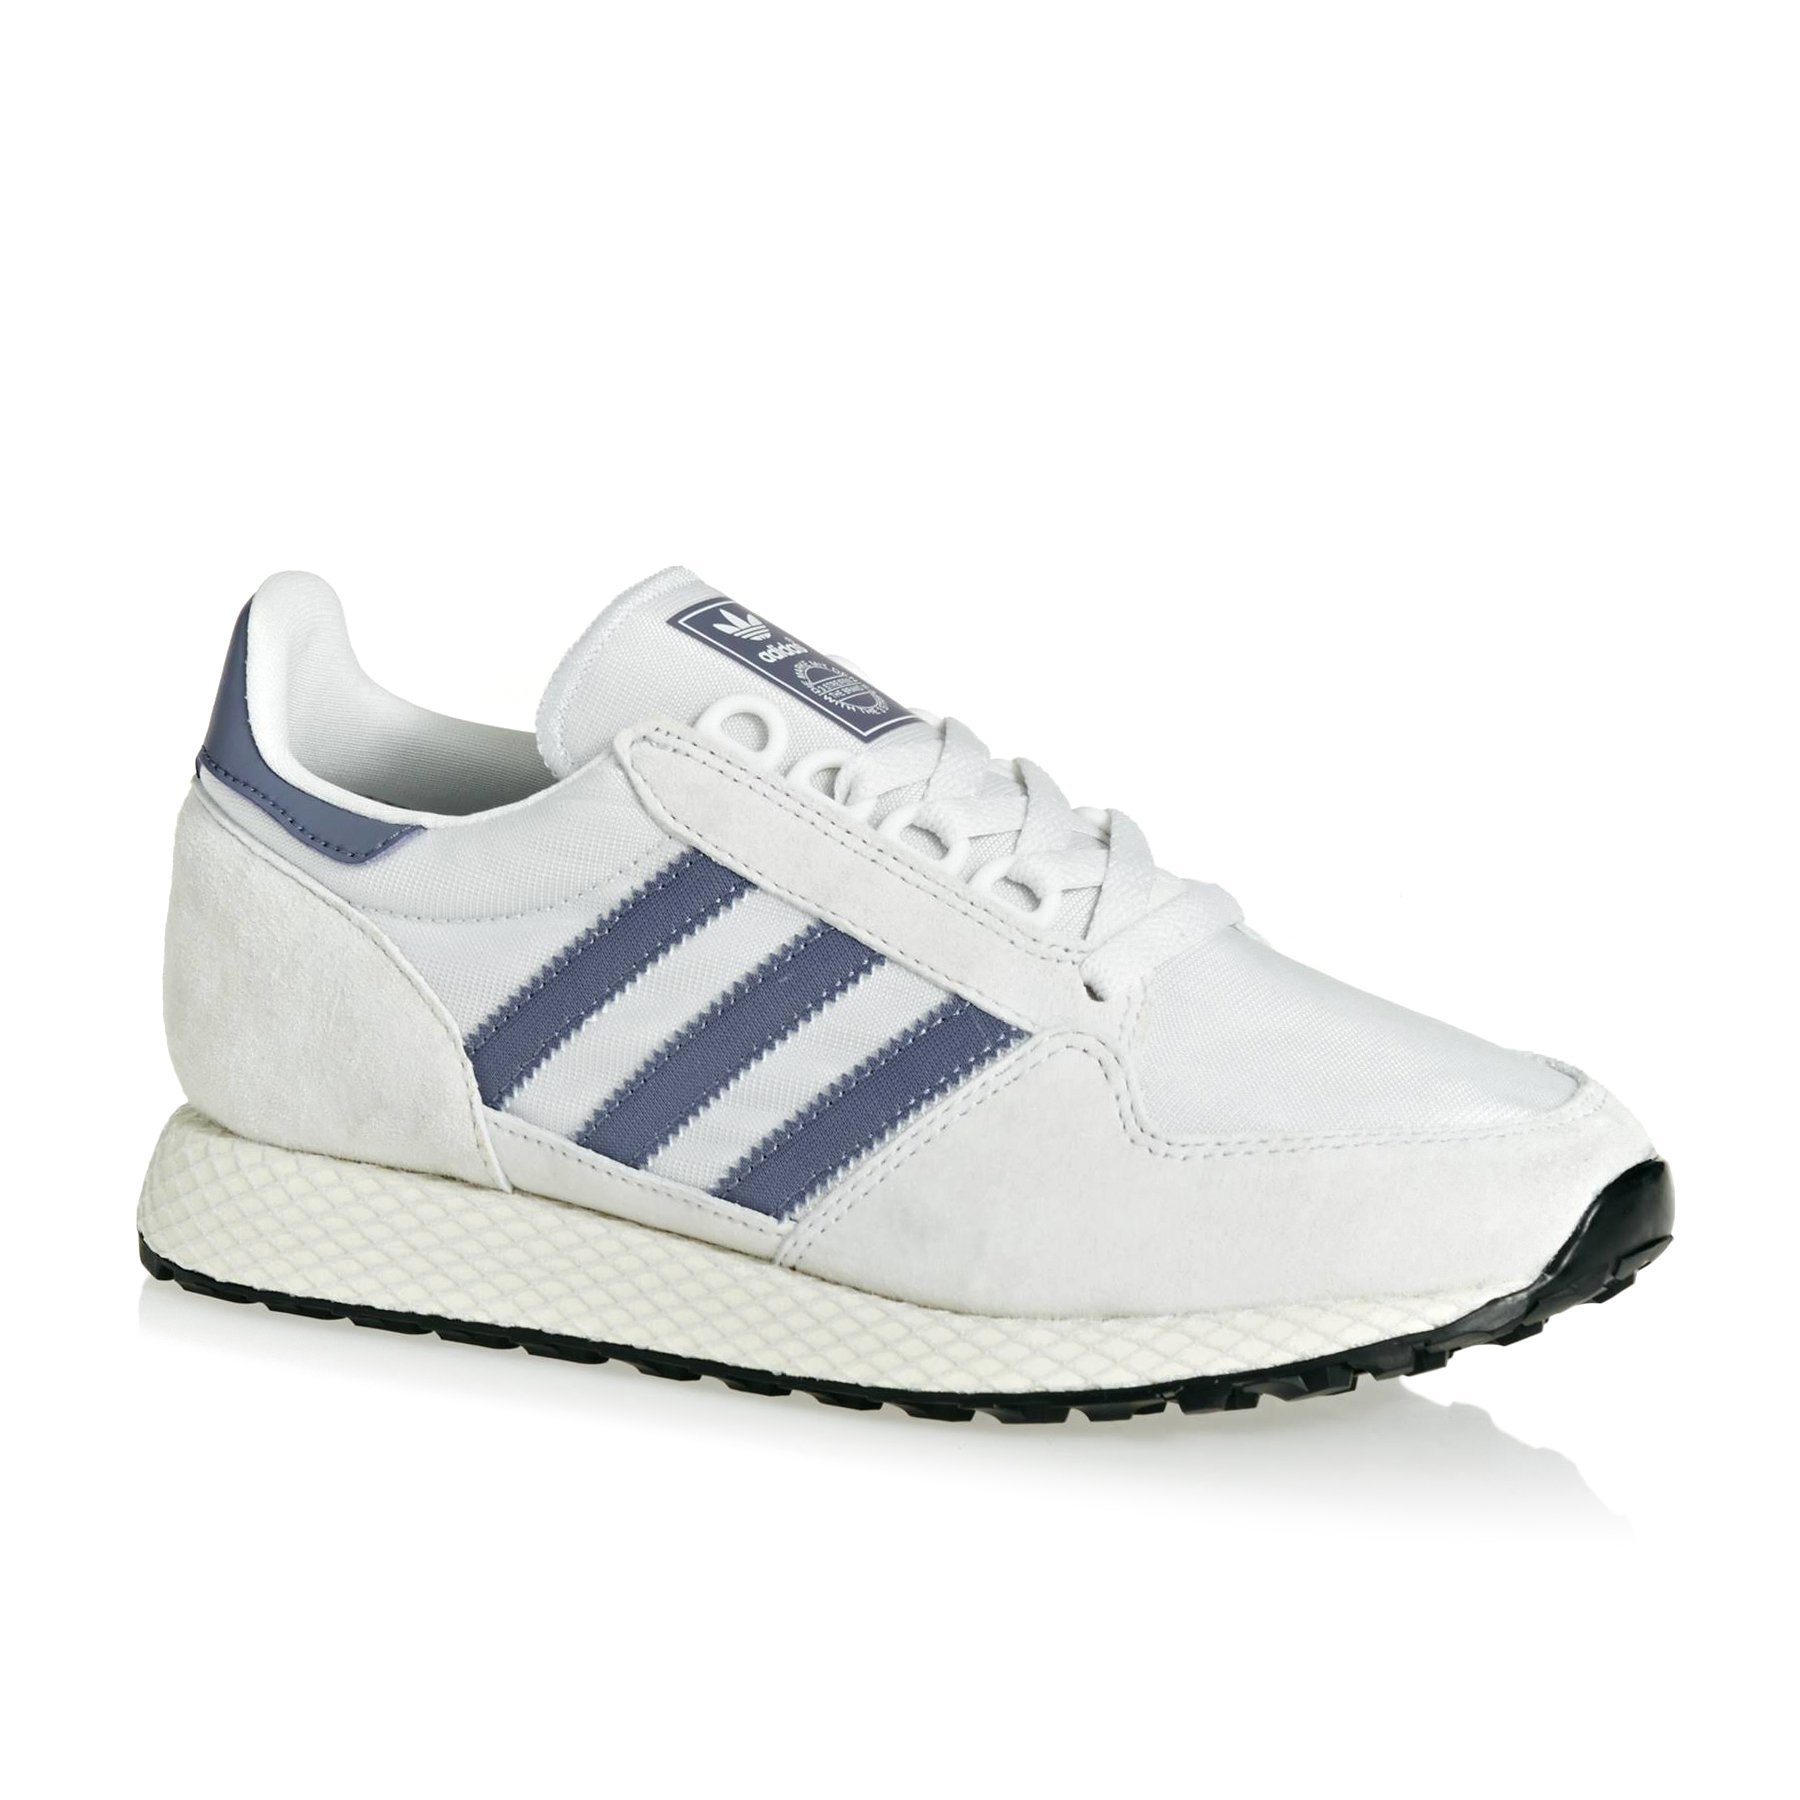 quality design 14583 8c412 Galleon - Adidas Originals Forest Grove W Shoes 5.5 B(M) US Women  4.5 D(M)  US Crywhtclowhicblack